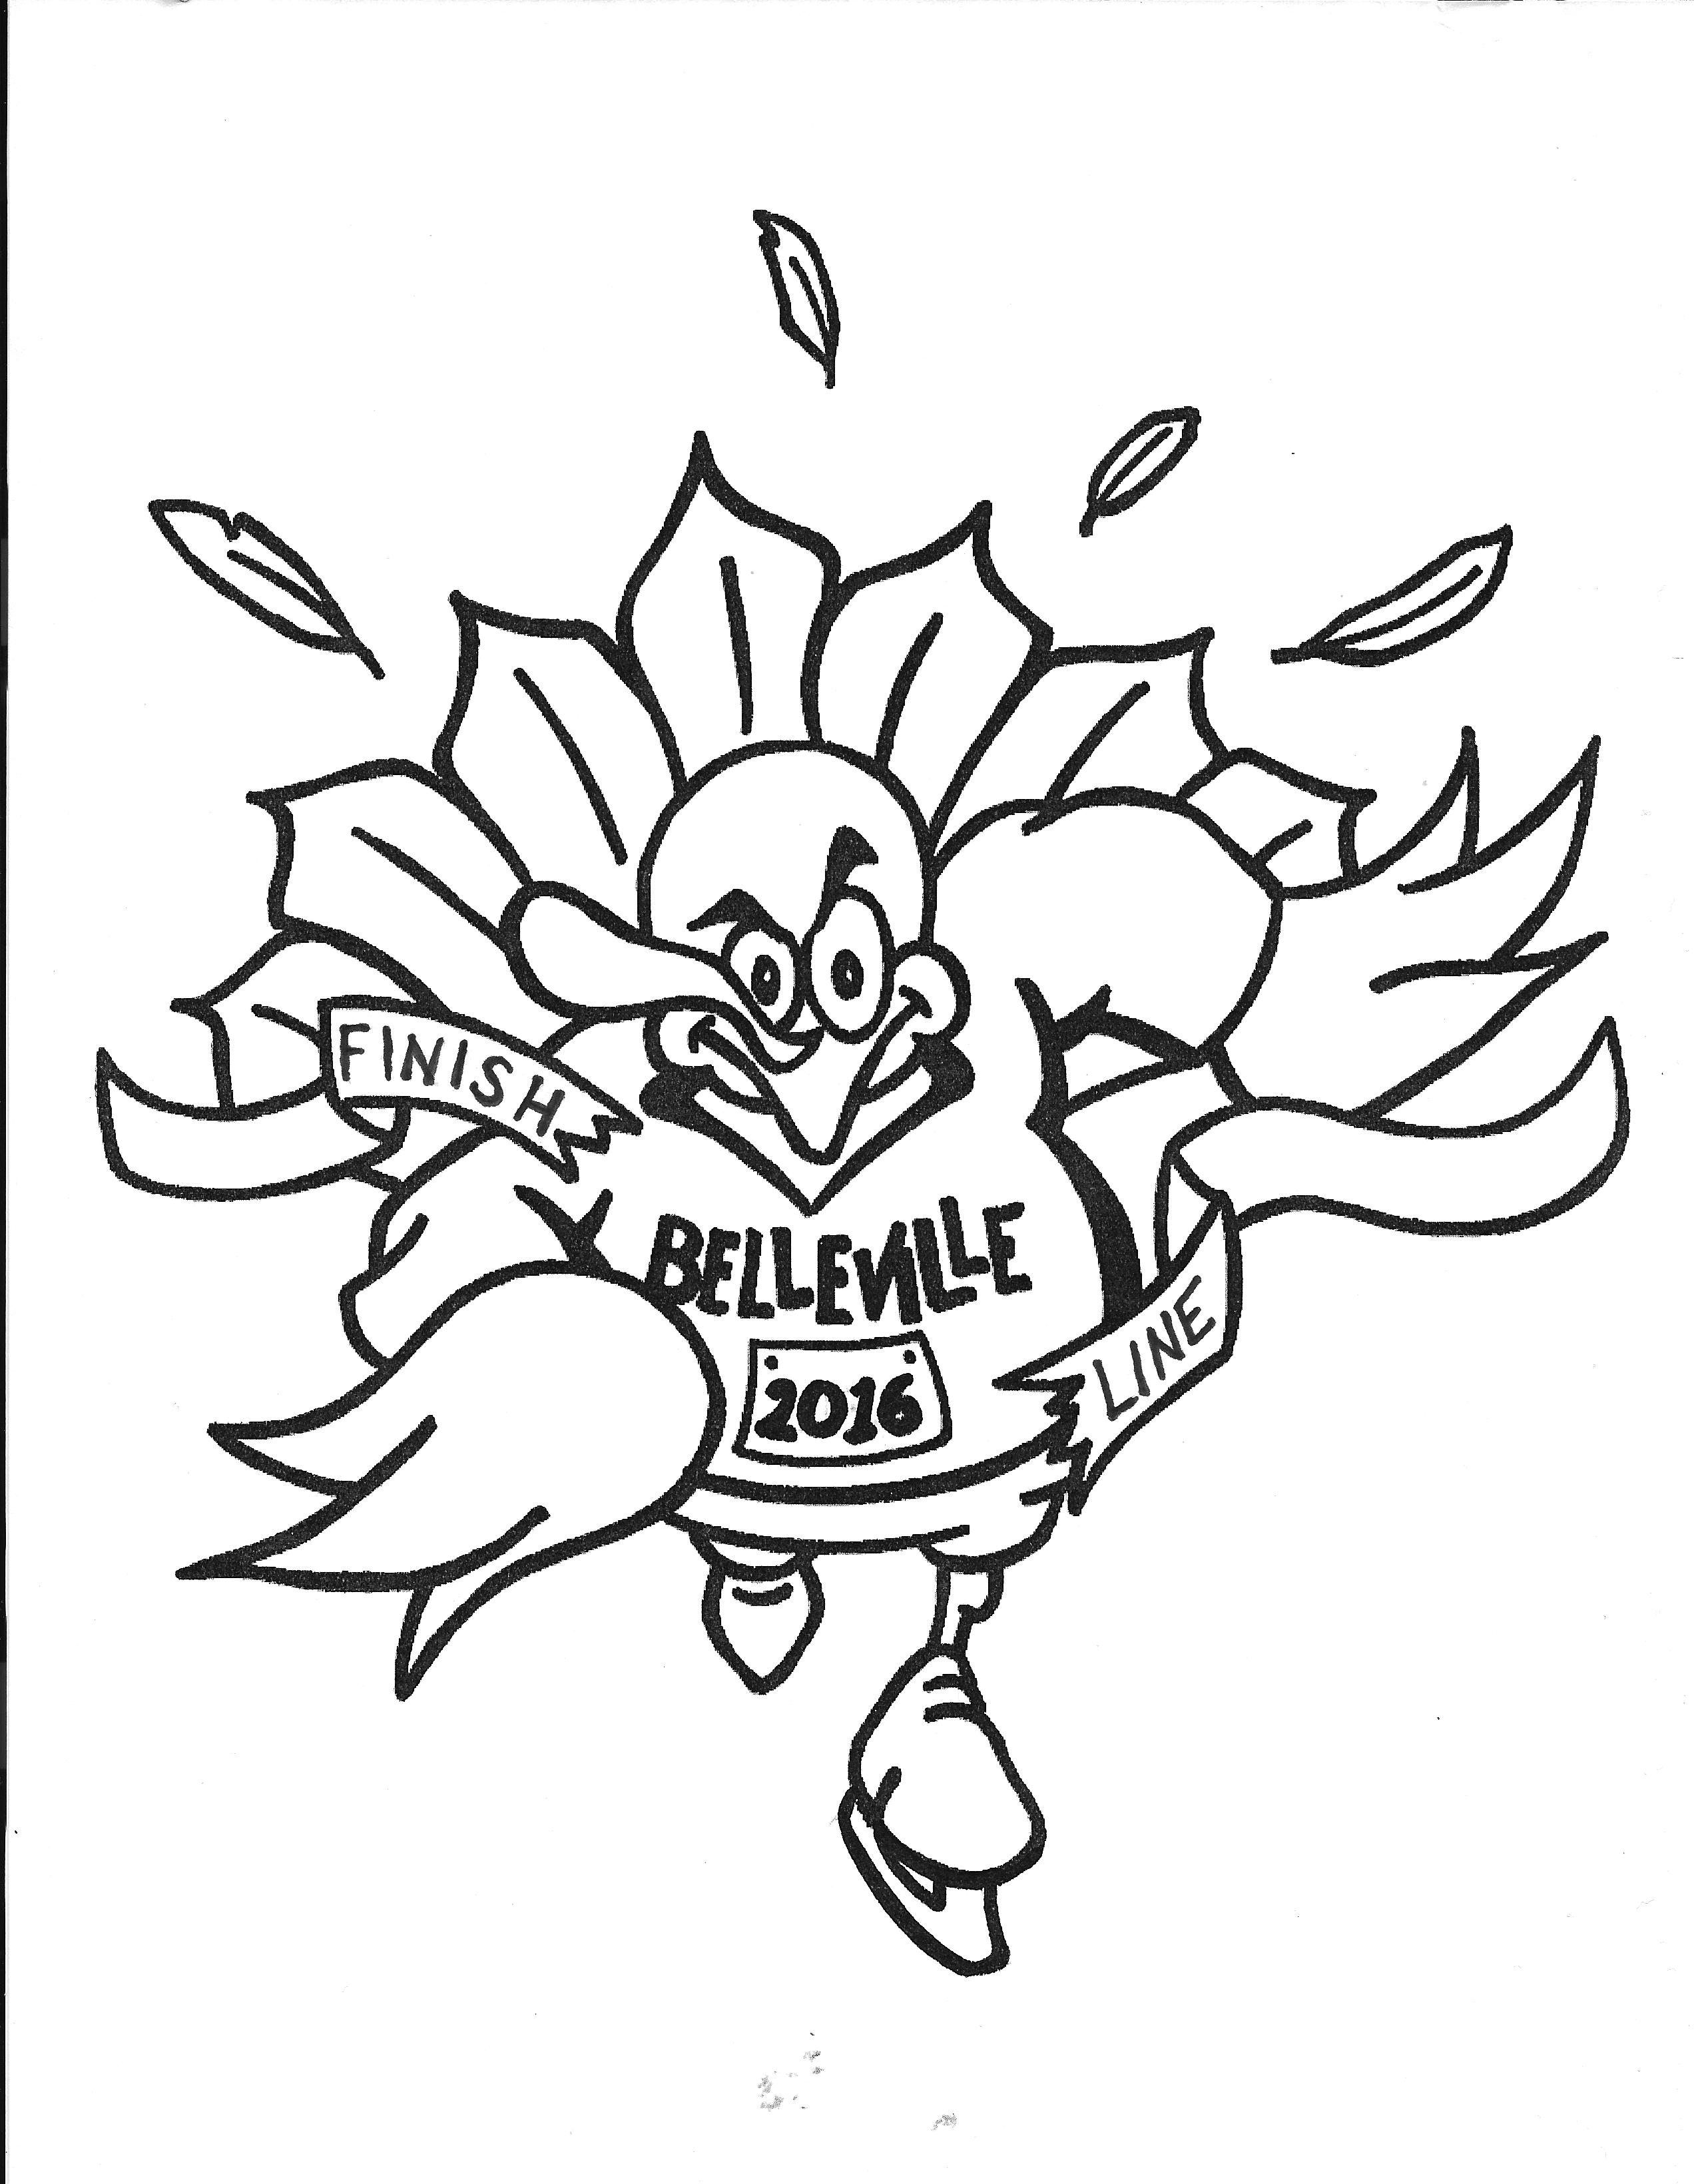 the belleville thanksgiving 5k run and turkey chase